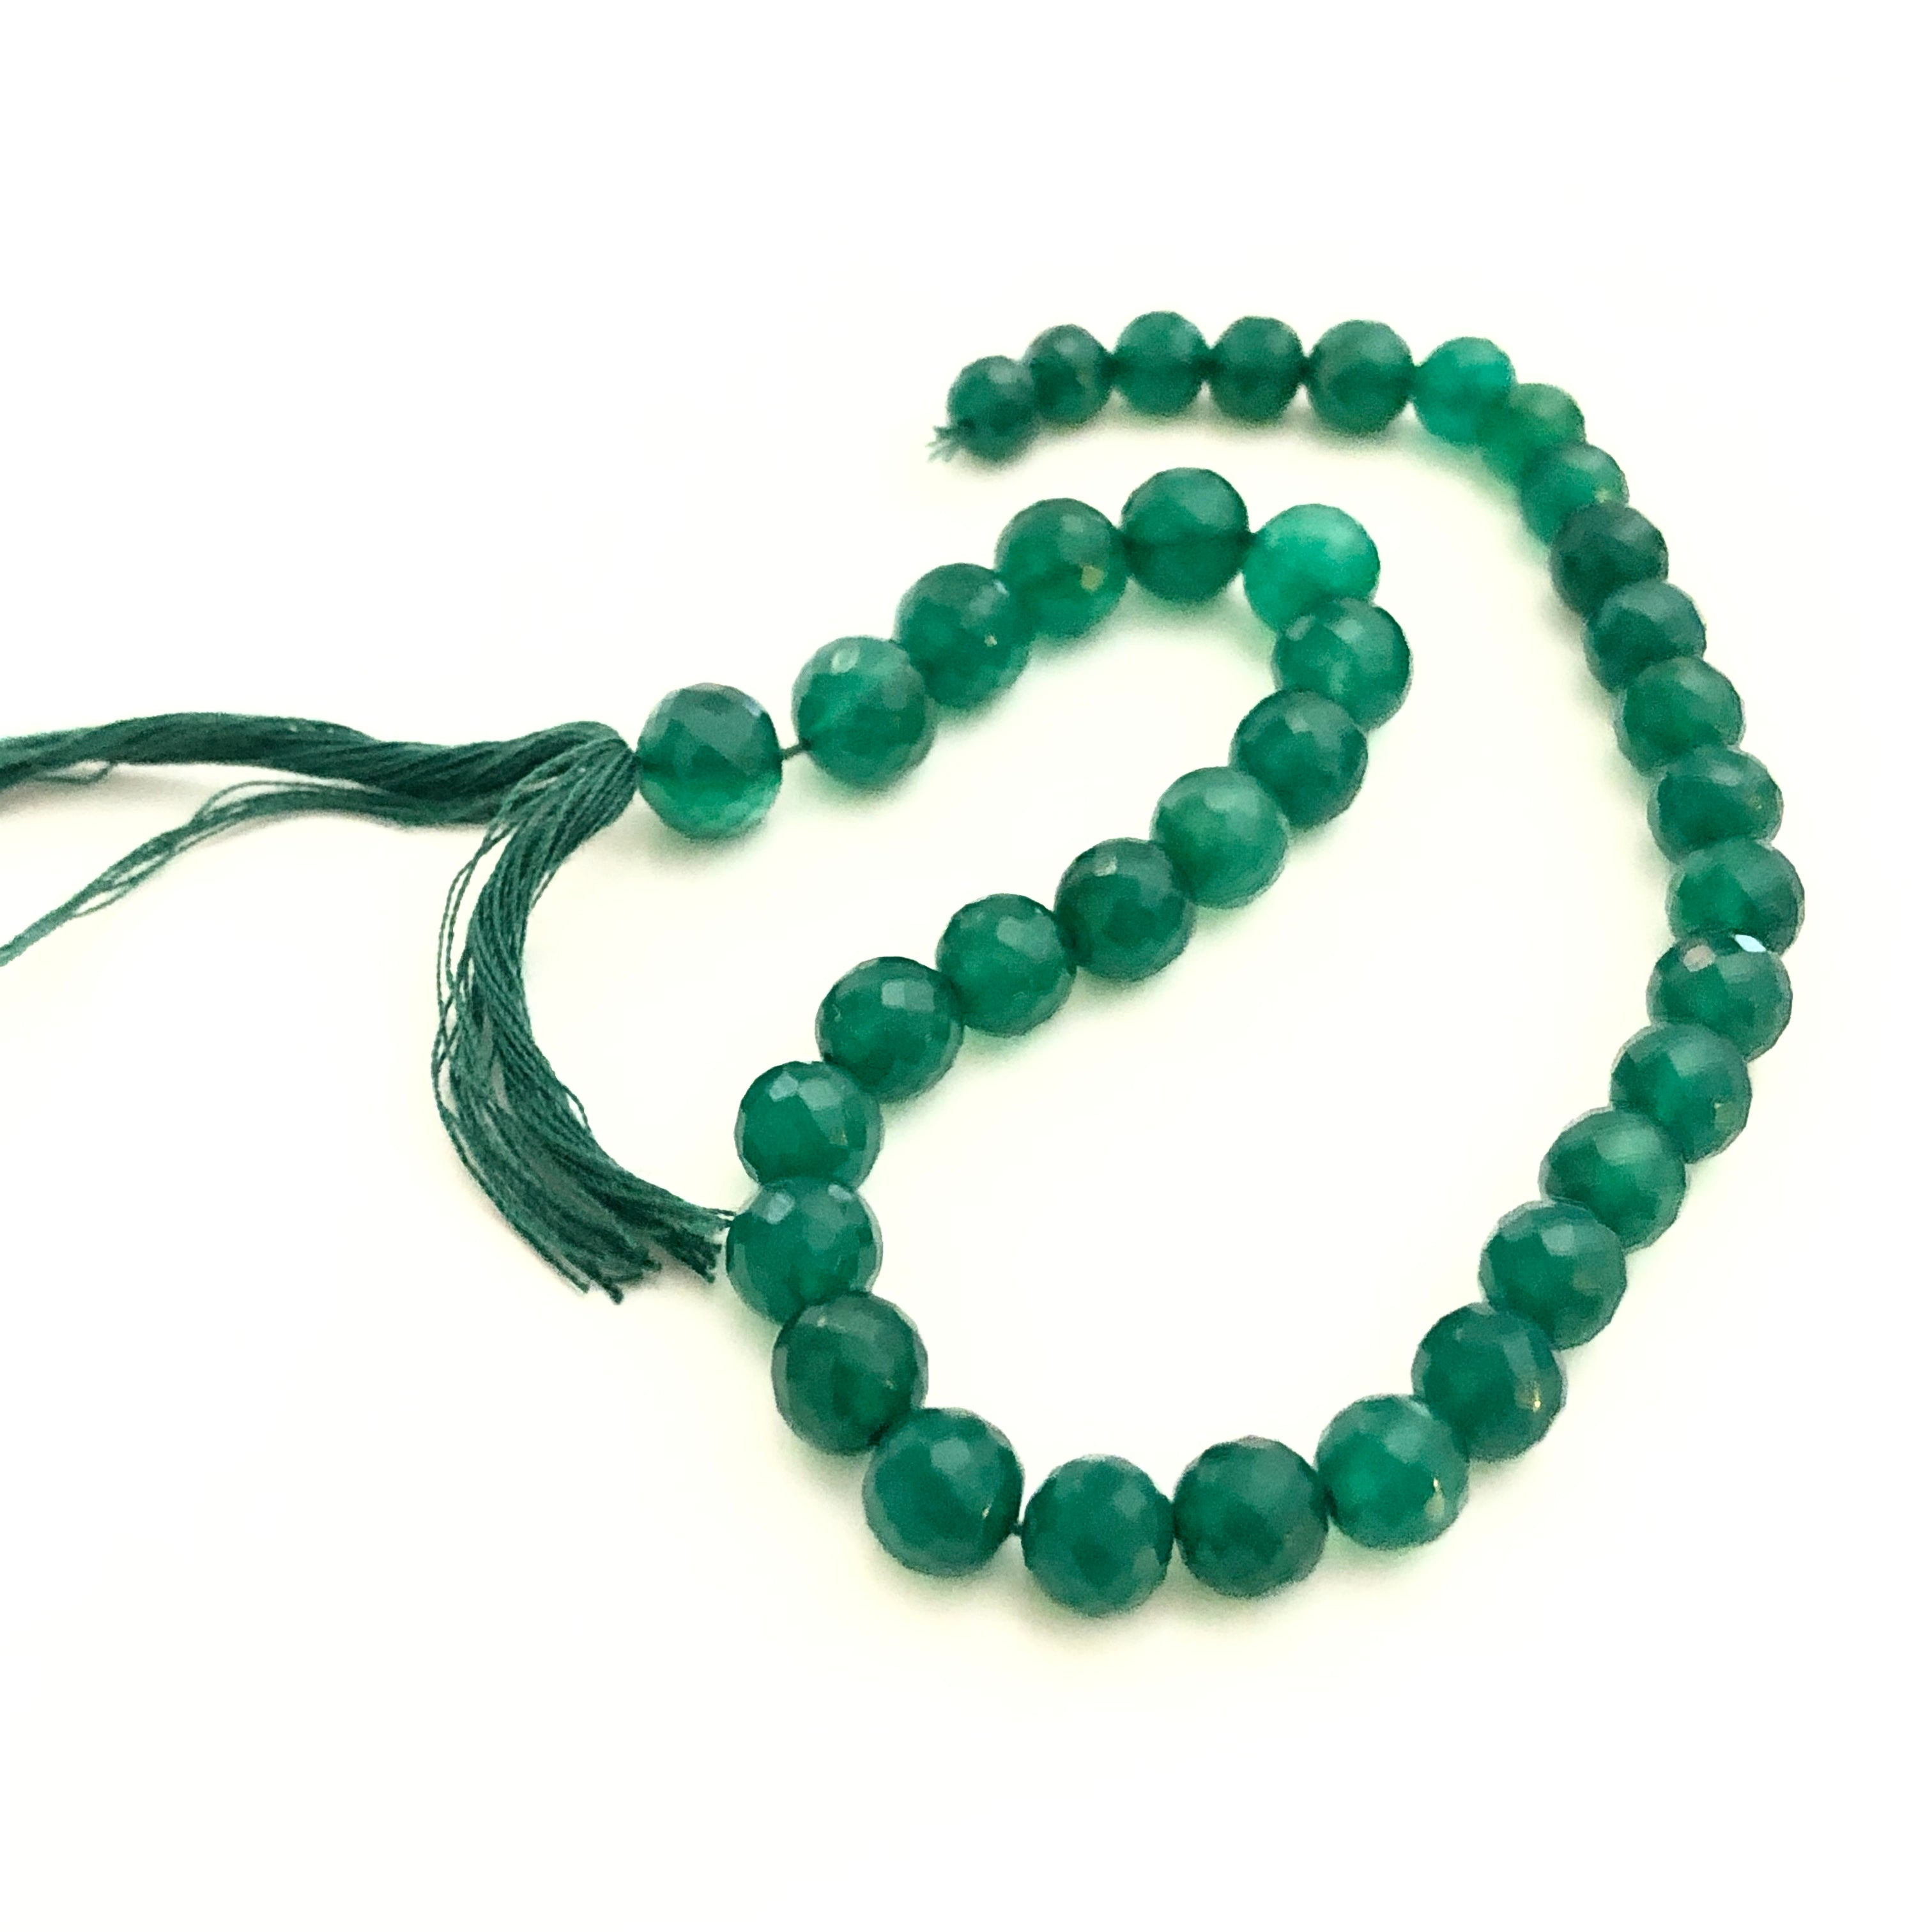 Green Onyx Faceted Beads- Full Strand